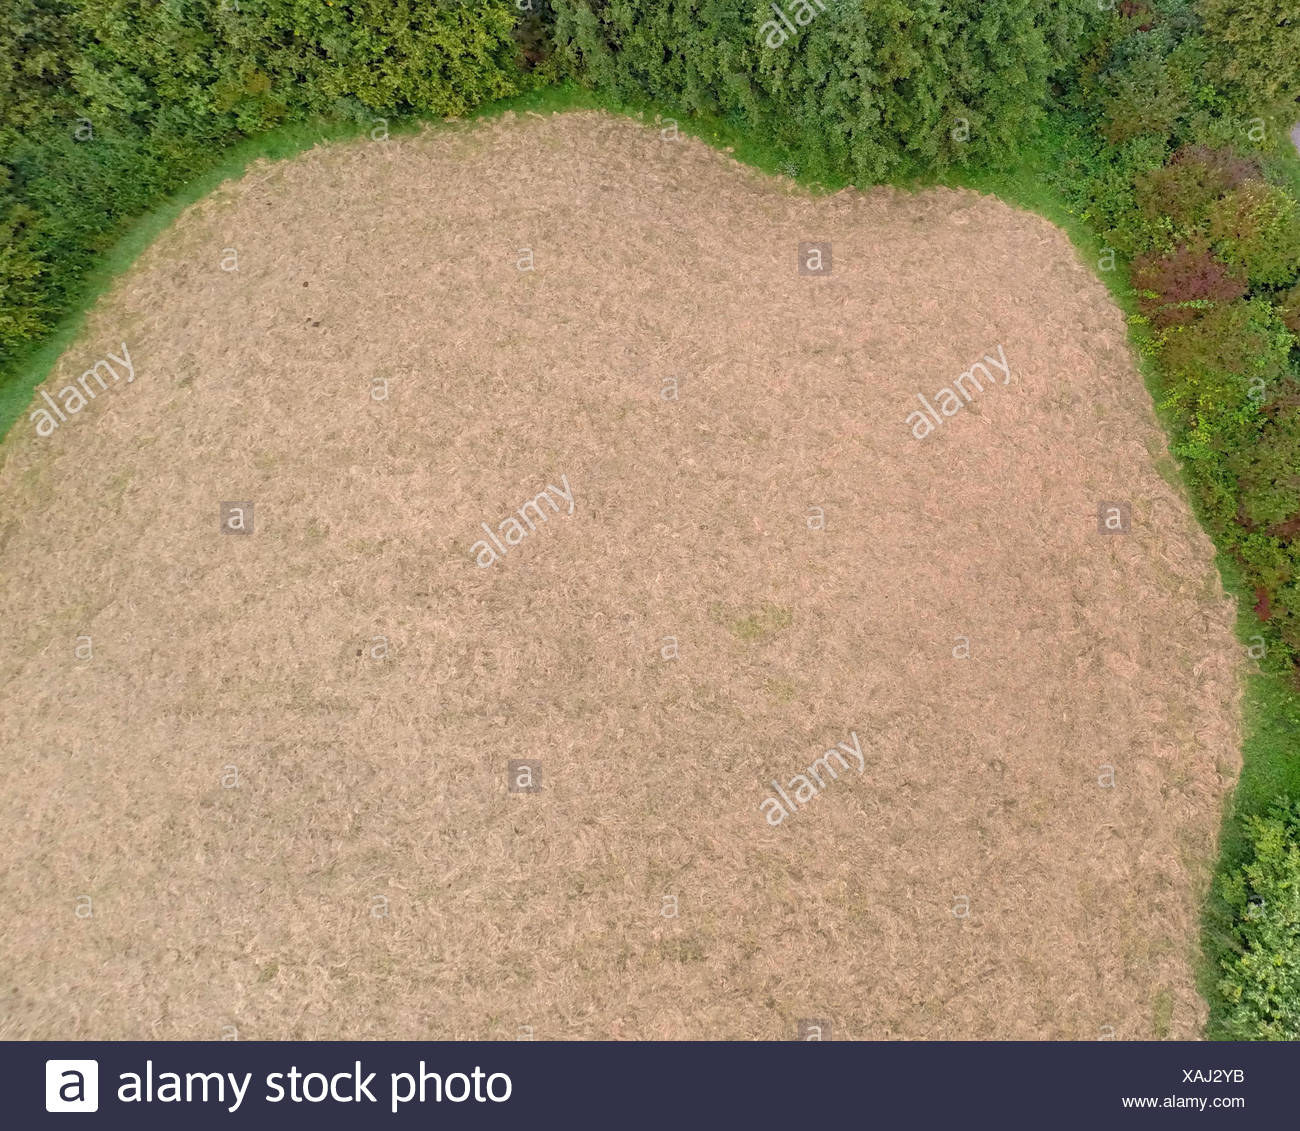 aerial view to mowed maedow - Stock Image